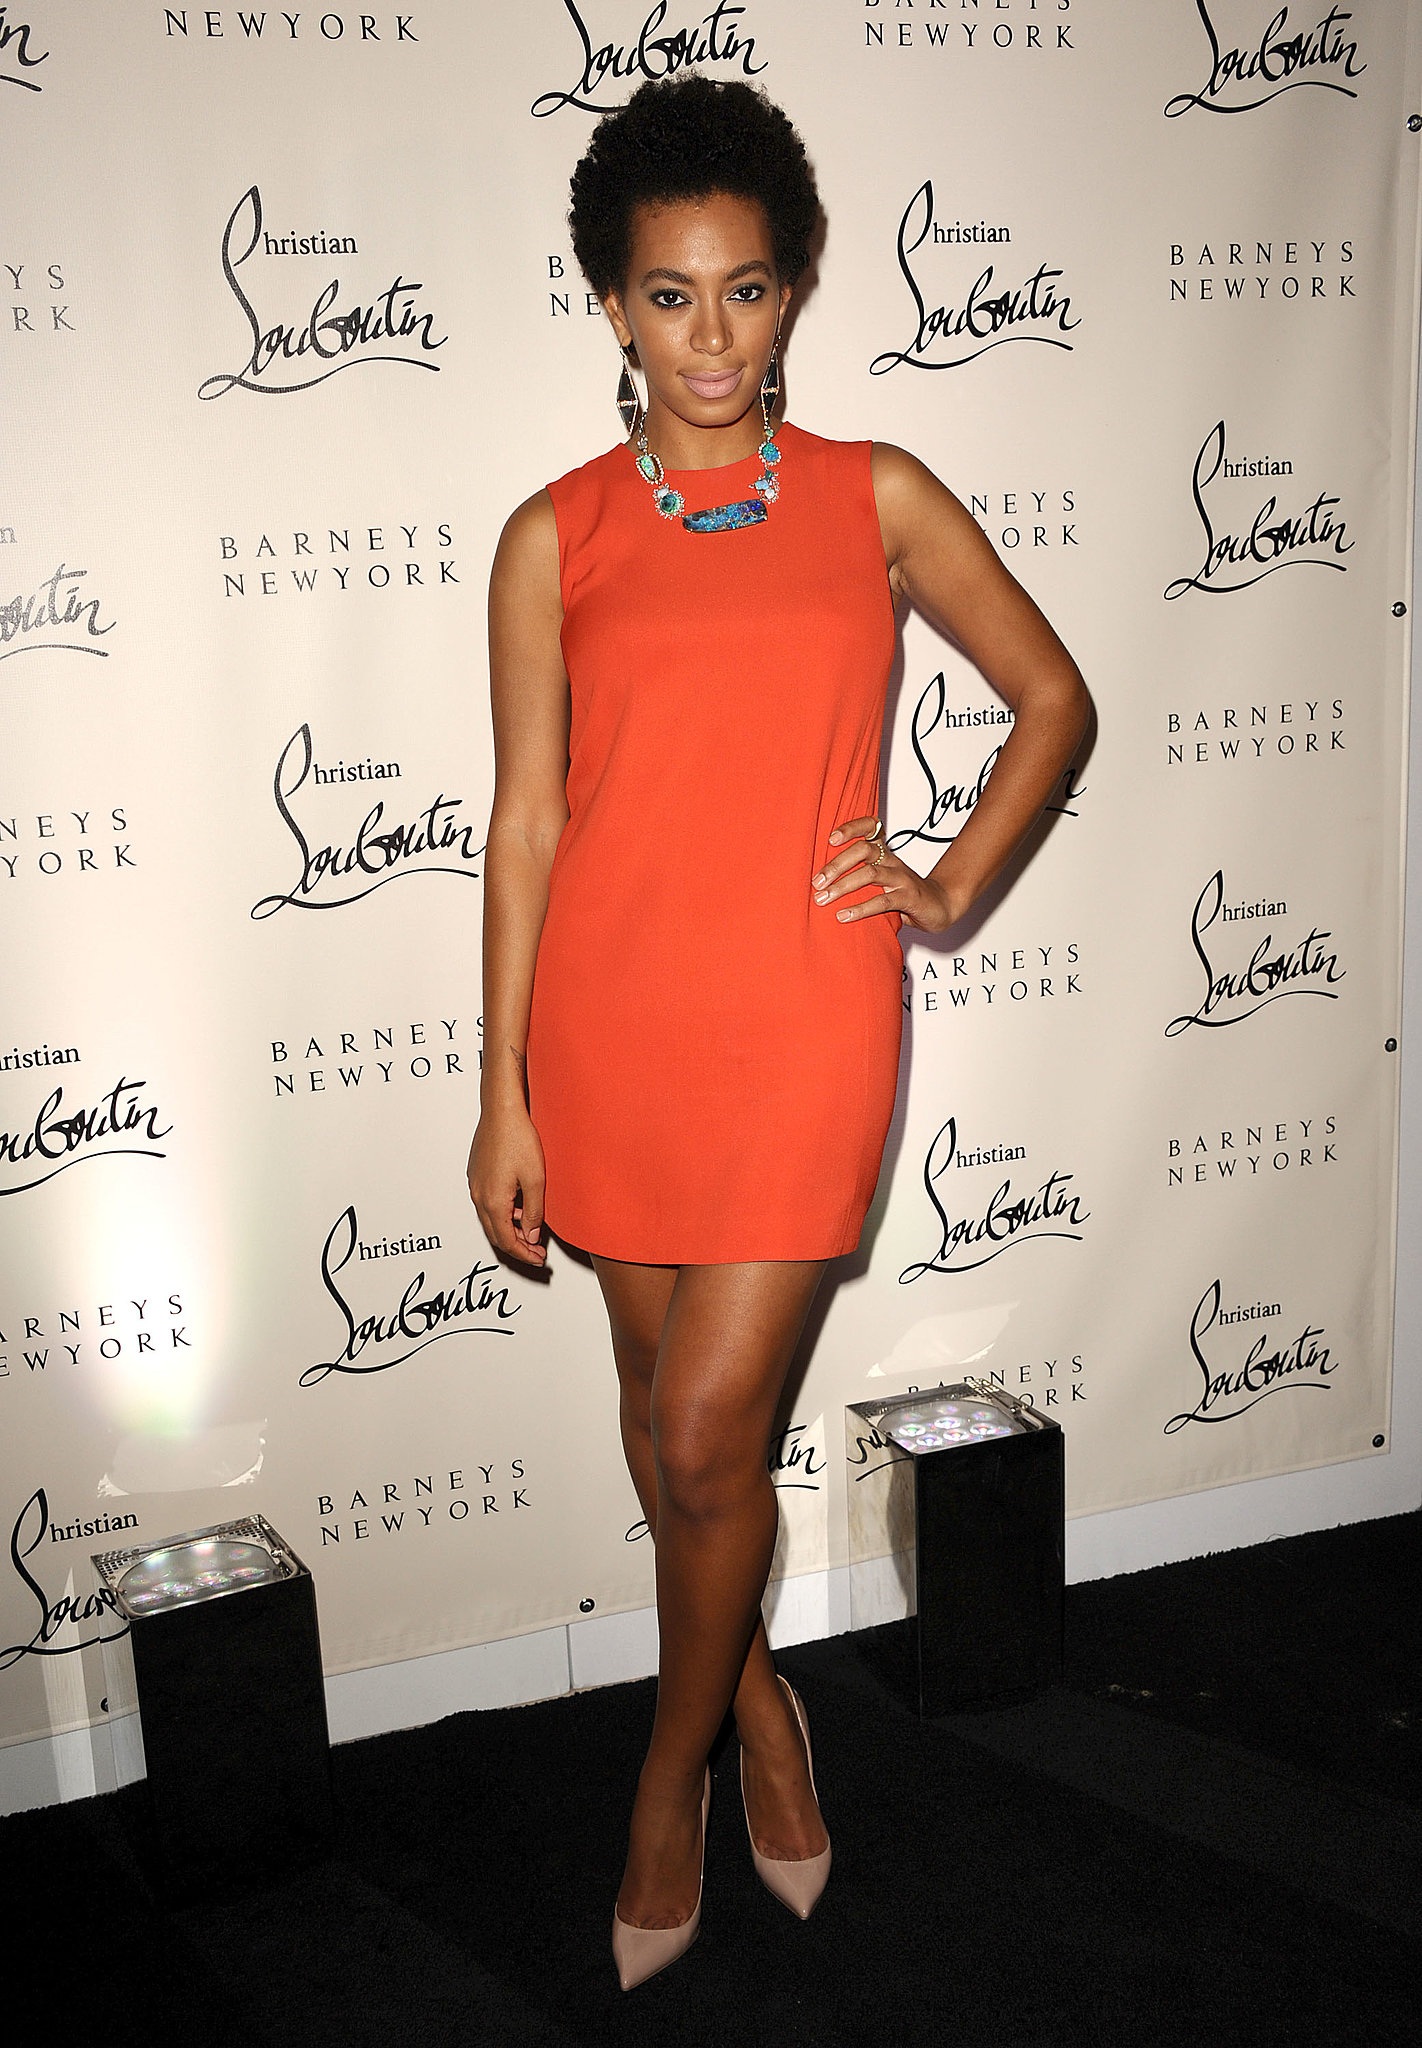 Solange donned a bright orange minidress with a beaded statement necklace and leg-lengthening nude heels for a Barney's New York event in 2011.